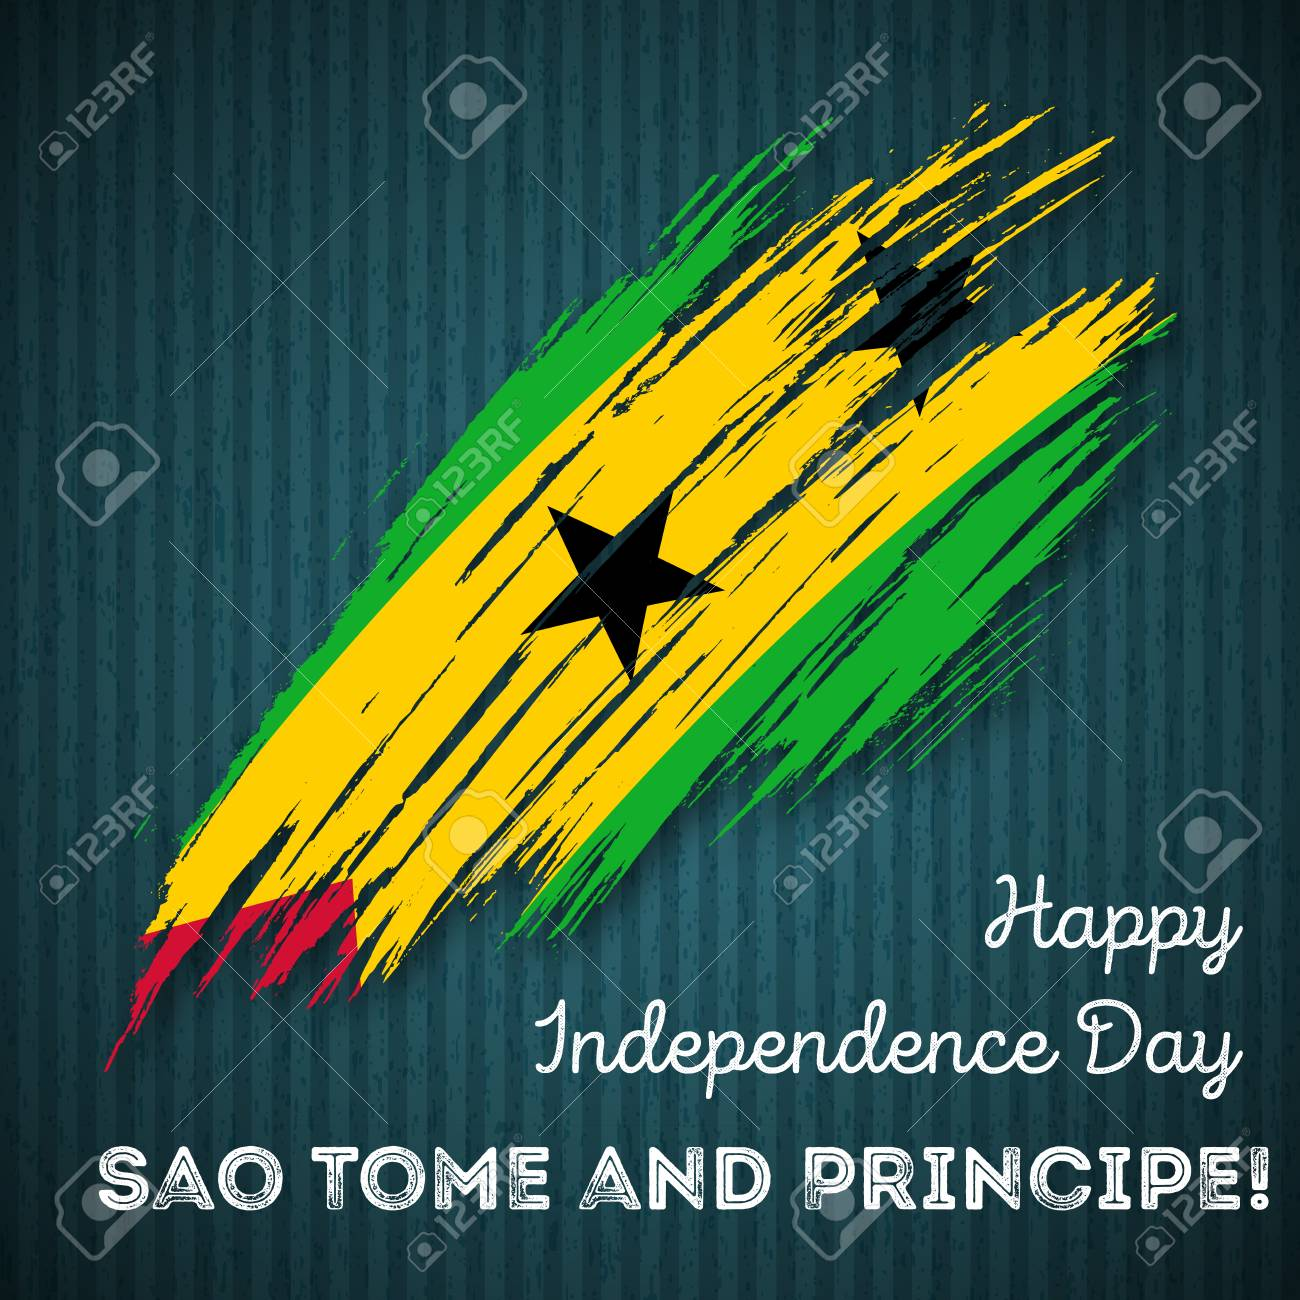 Sao Tome and Principe Independence Day Patriotic Design. Expressive Brush Stroke in National Flag Colors on dark striped background. Happy Independence Day Sao Tome and Principe Vector Greeting Card. - 84280637